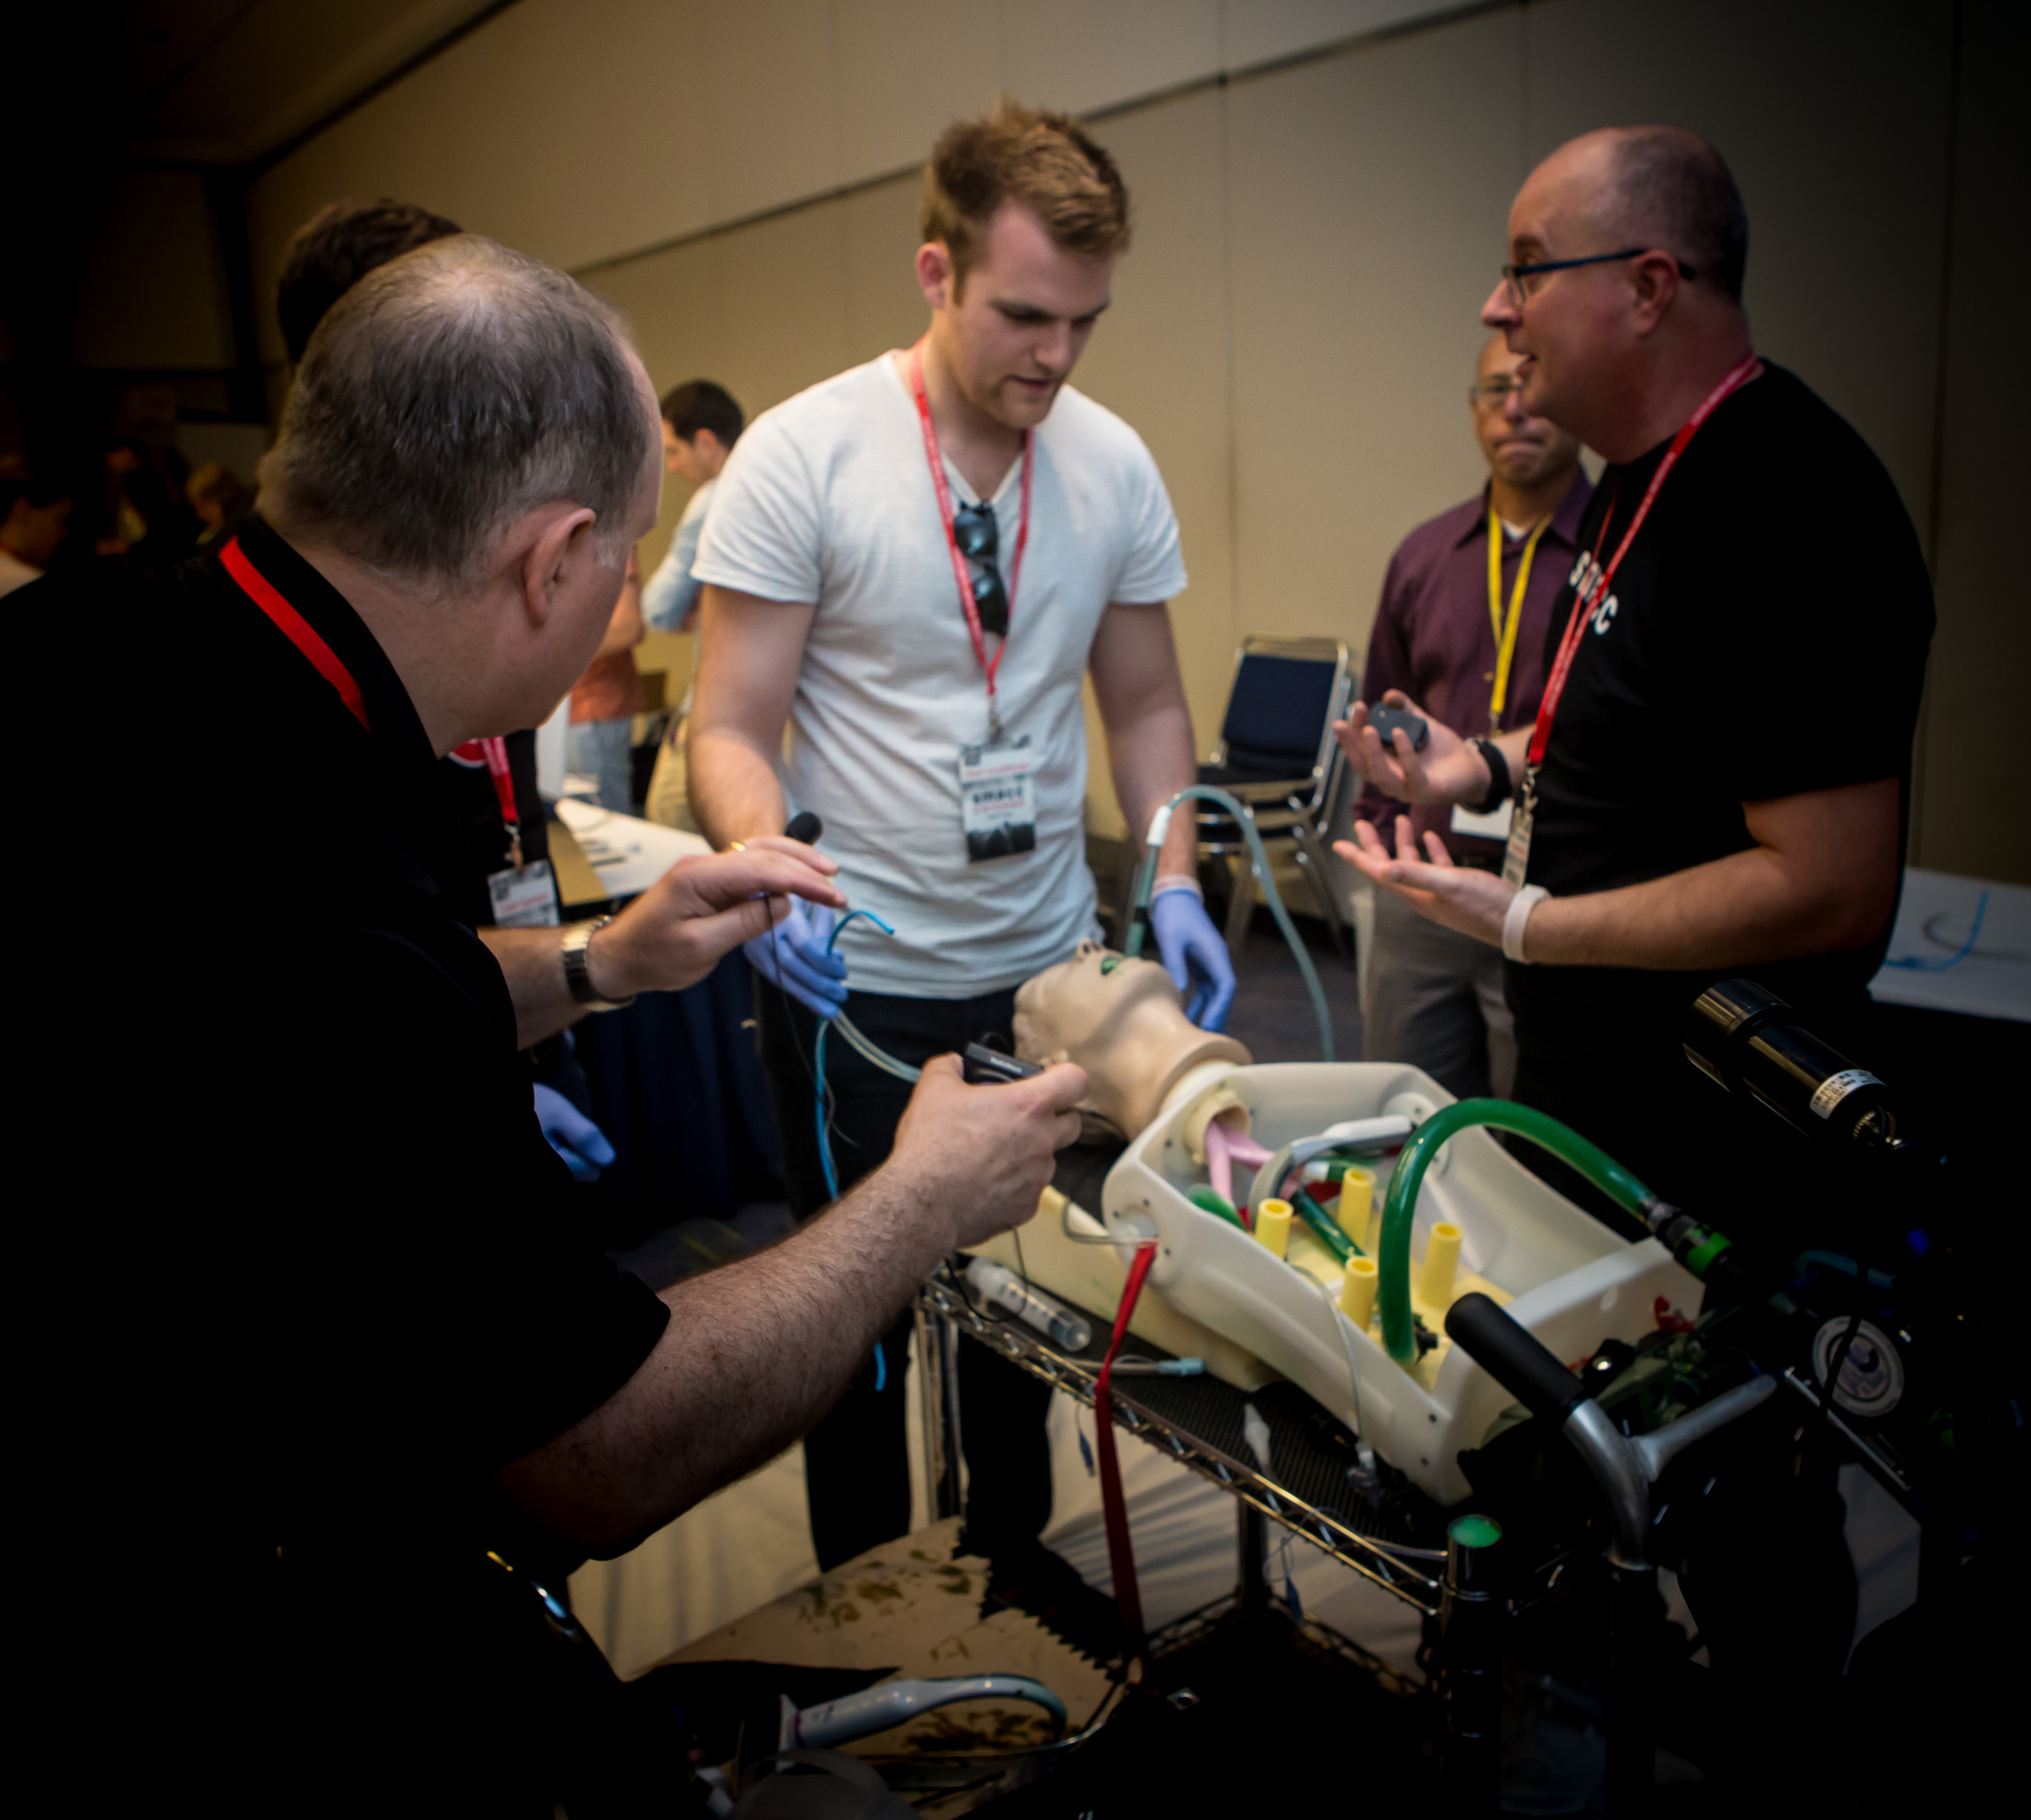 20150624-SMACC AirwayIMGL0337.jpg